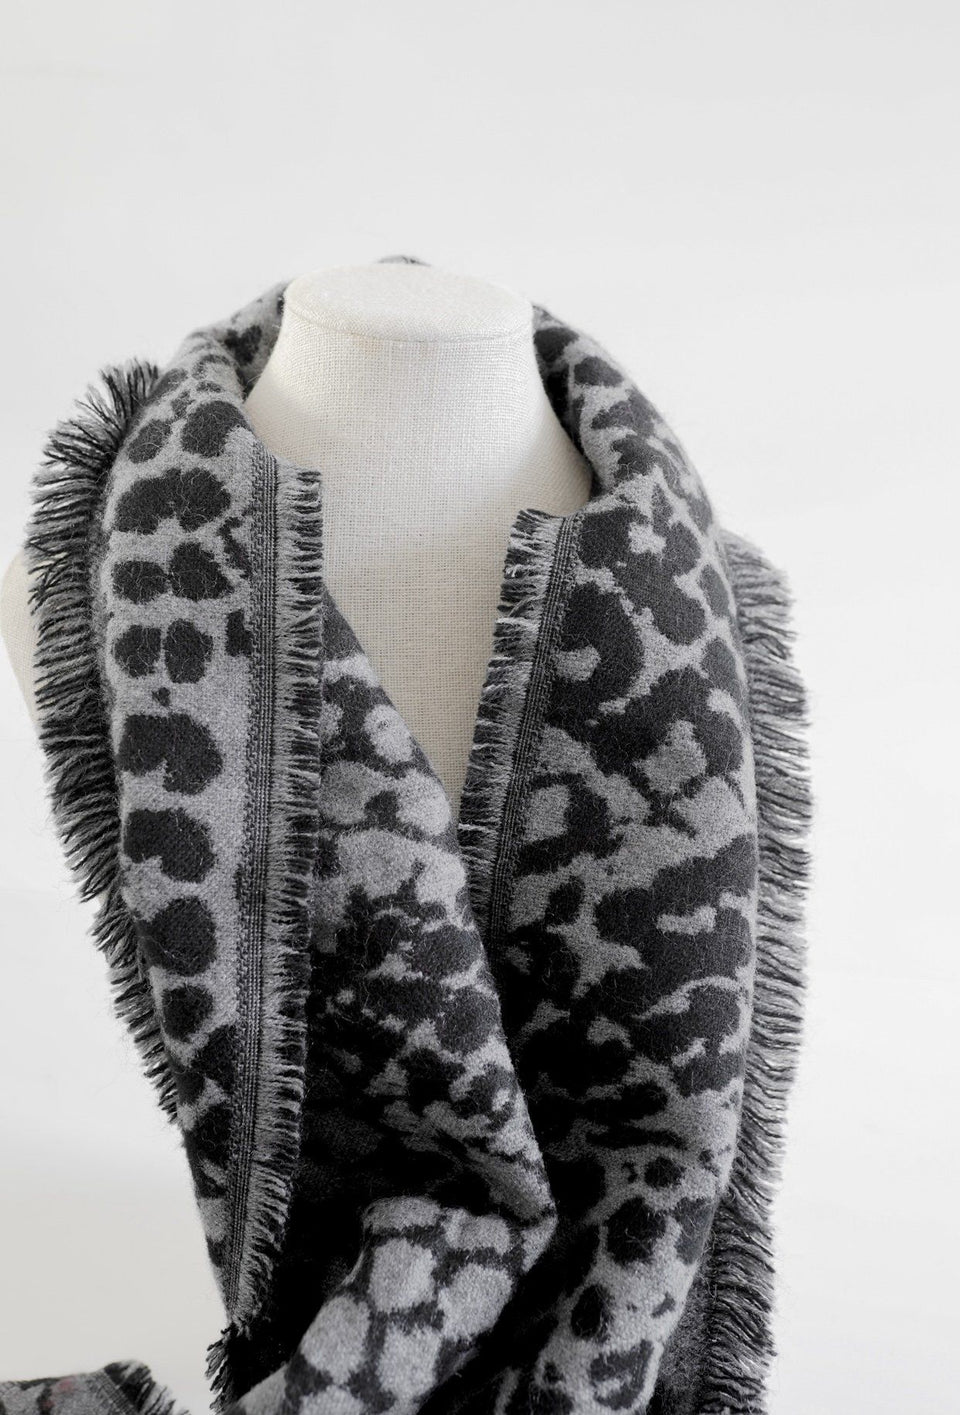 Black & White Animal Print Scarf with Fringe